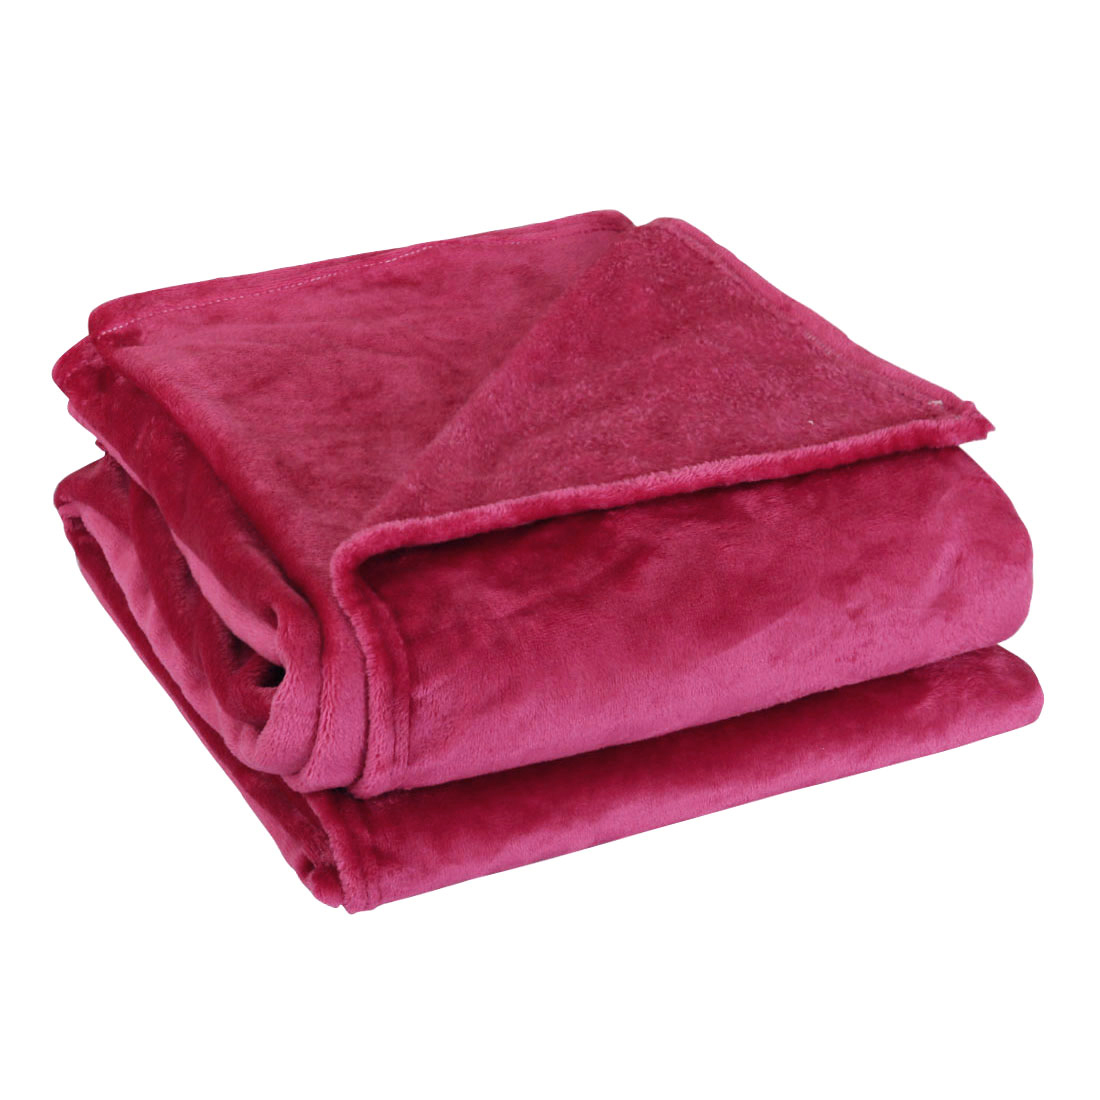 "Super Soft Warm Rug Luxury plush Fleece Throw Blanket, Suitable for Chair or Bed, Machine Washable,Burgundy, 180 x 230 cm (71"" x 78"")"